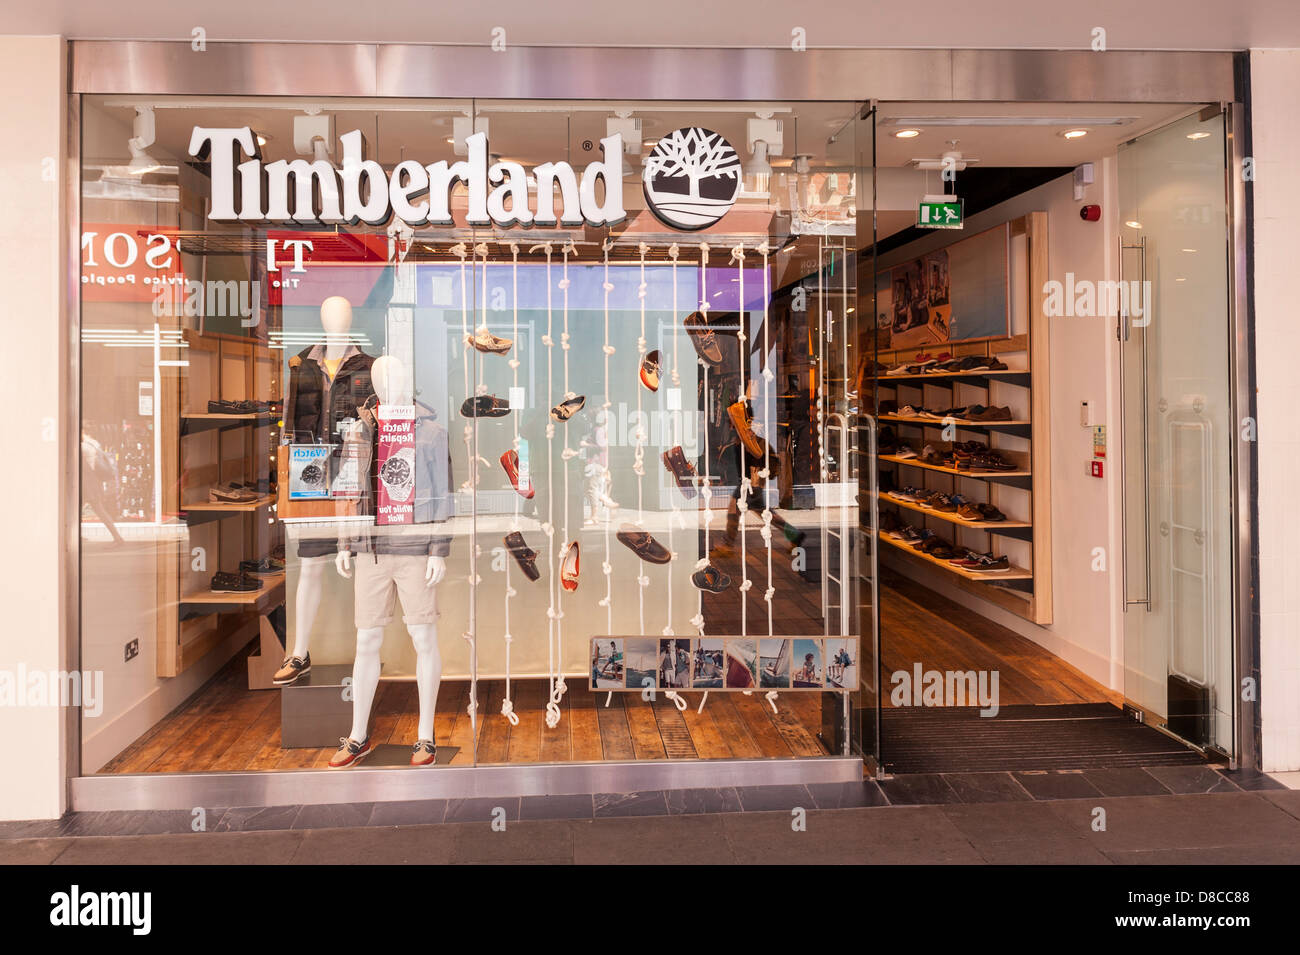 La Timberland shop store in Cambridge, Inghilterra, Regno